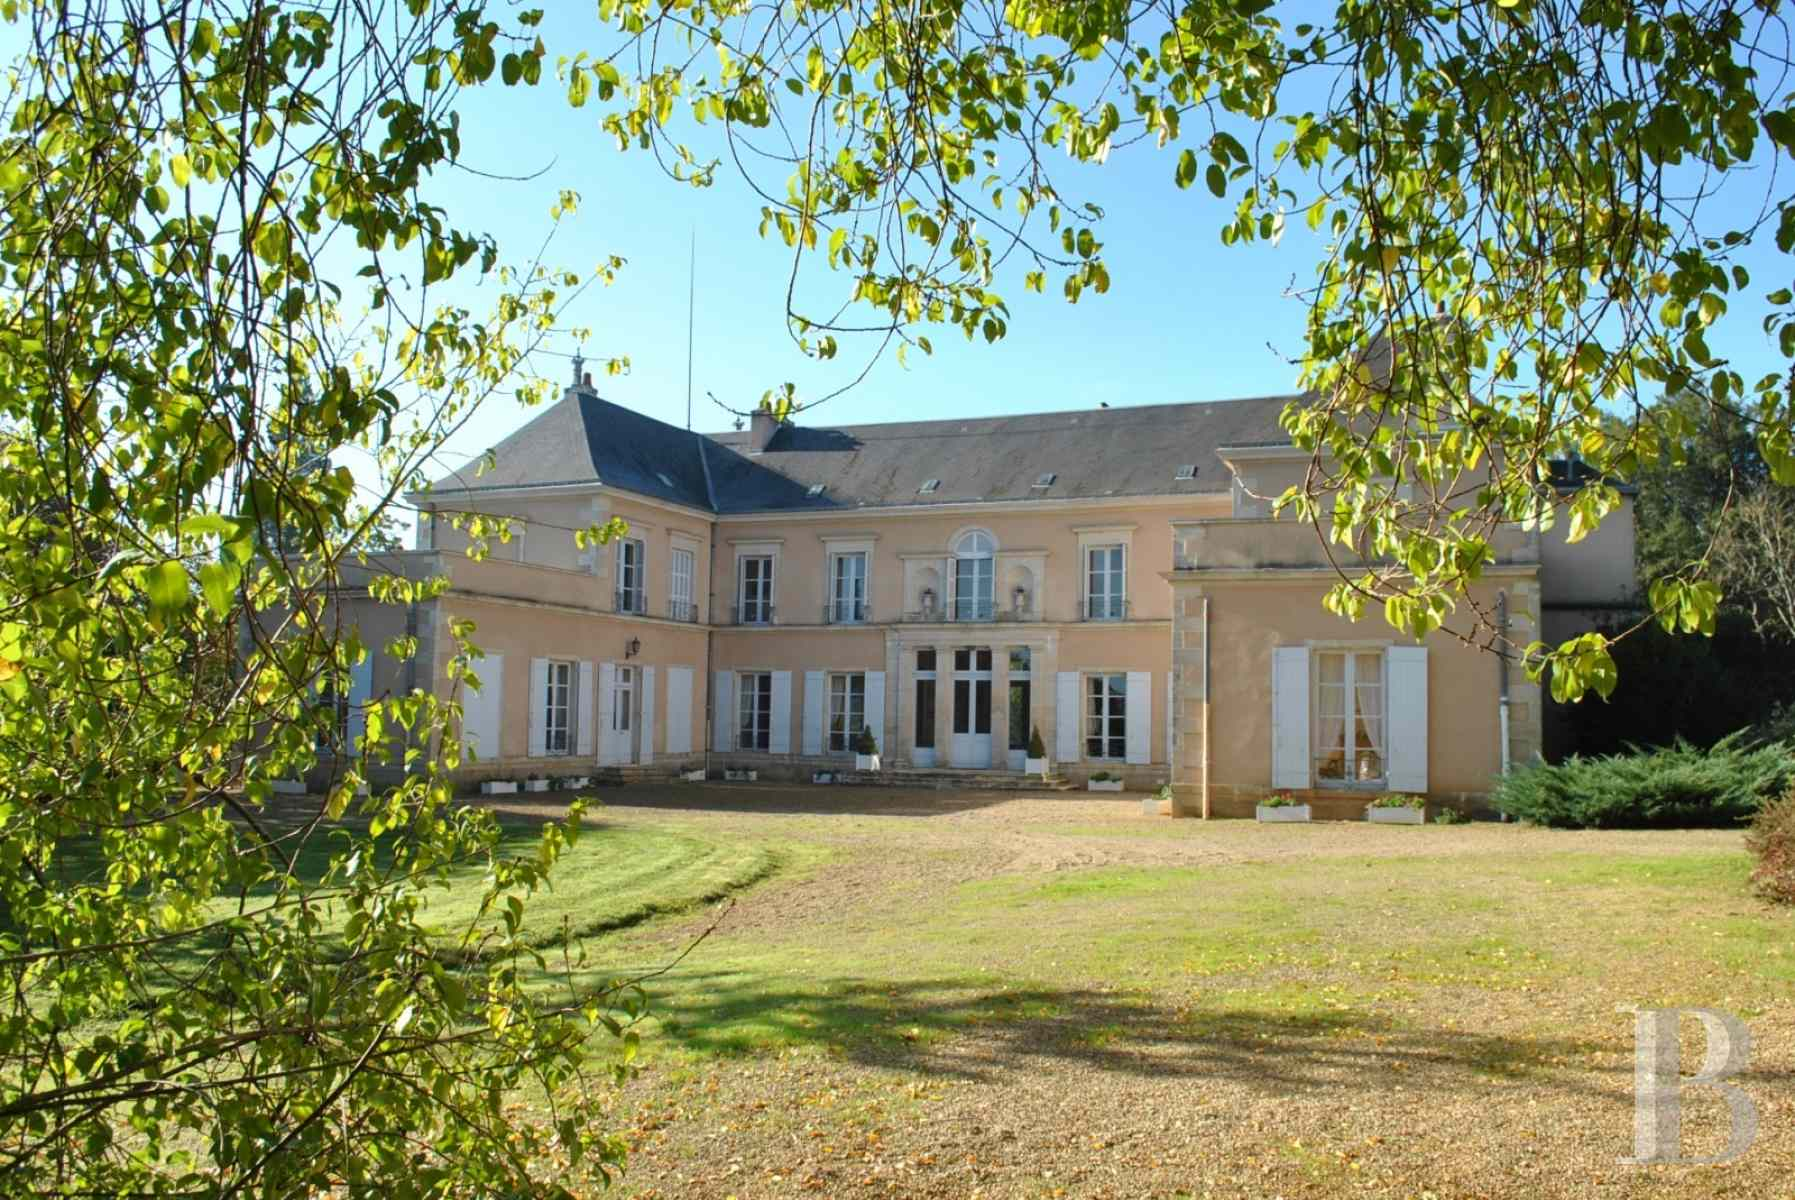 chateaux for sale France poitou charentes property outbuildings - 1 zoom